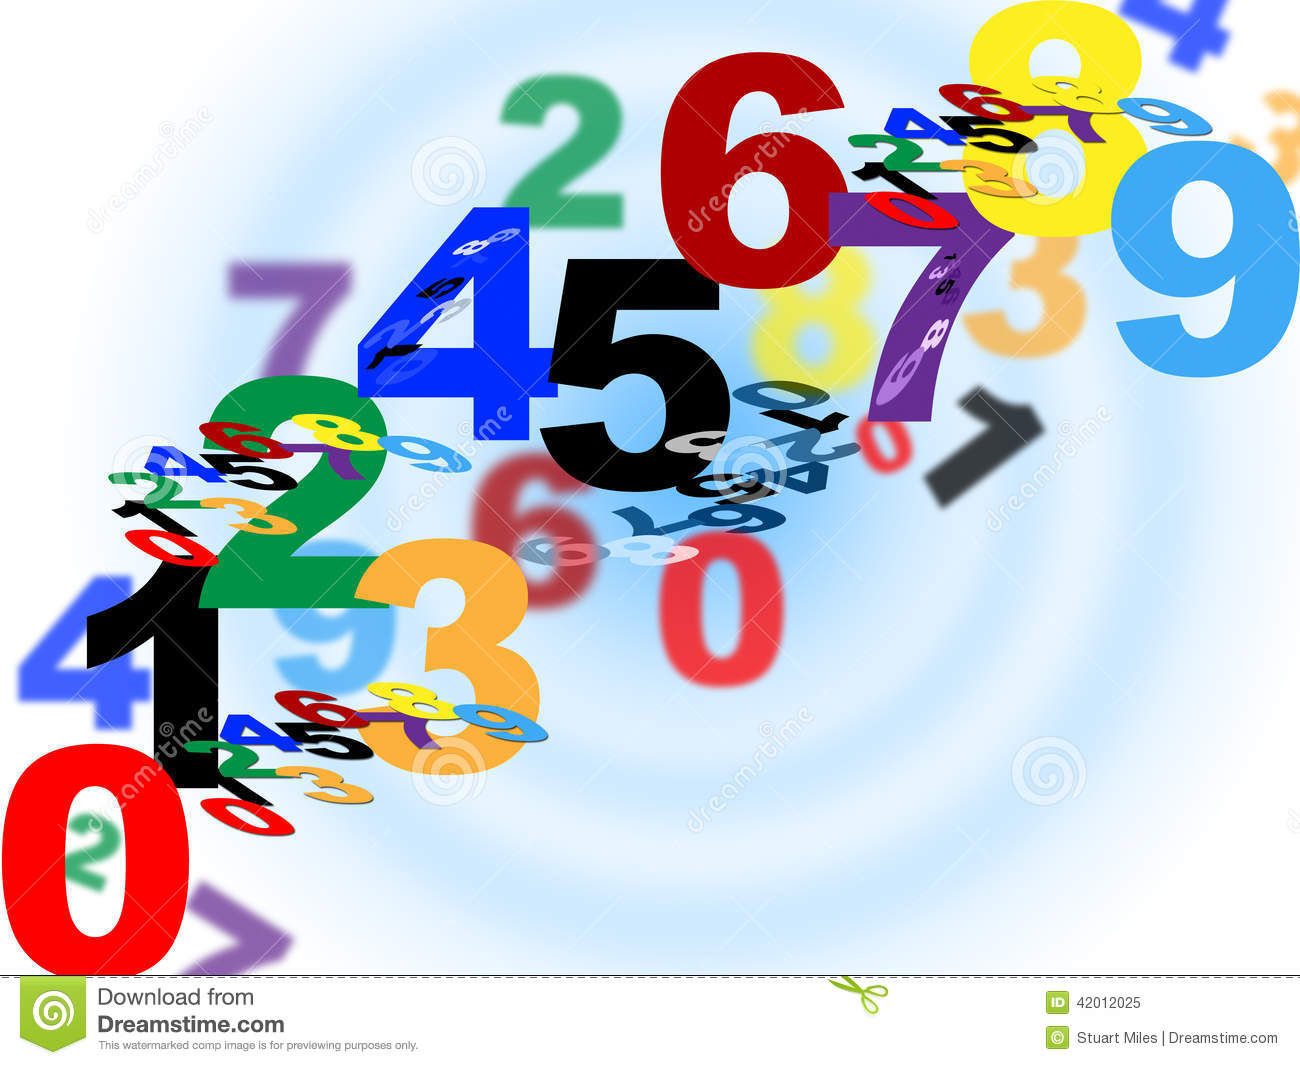 Maths Counting Means Numerical Number And Template Stock Illustration